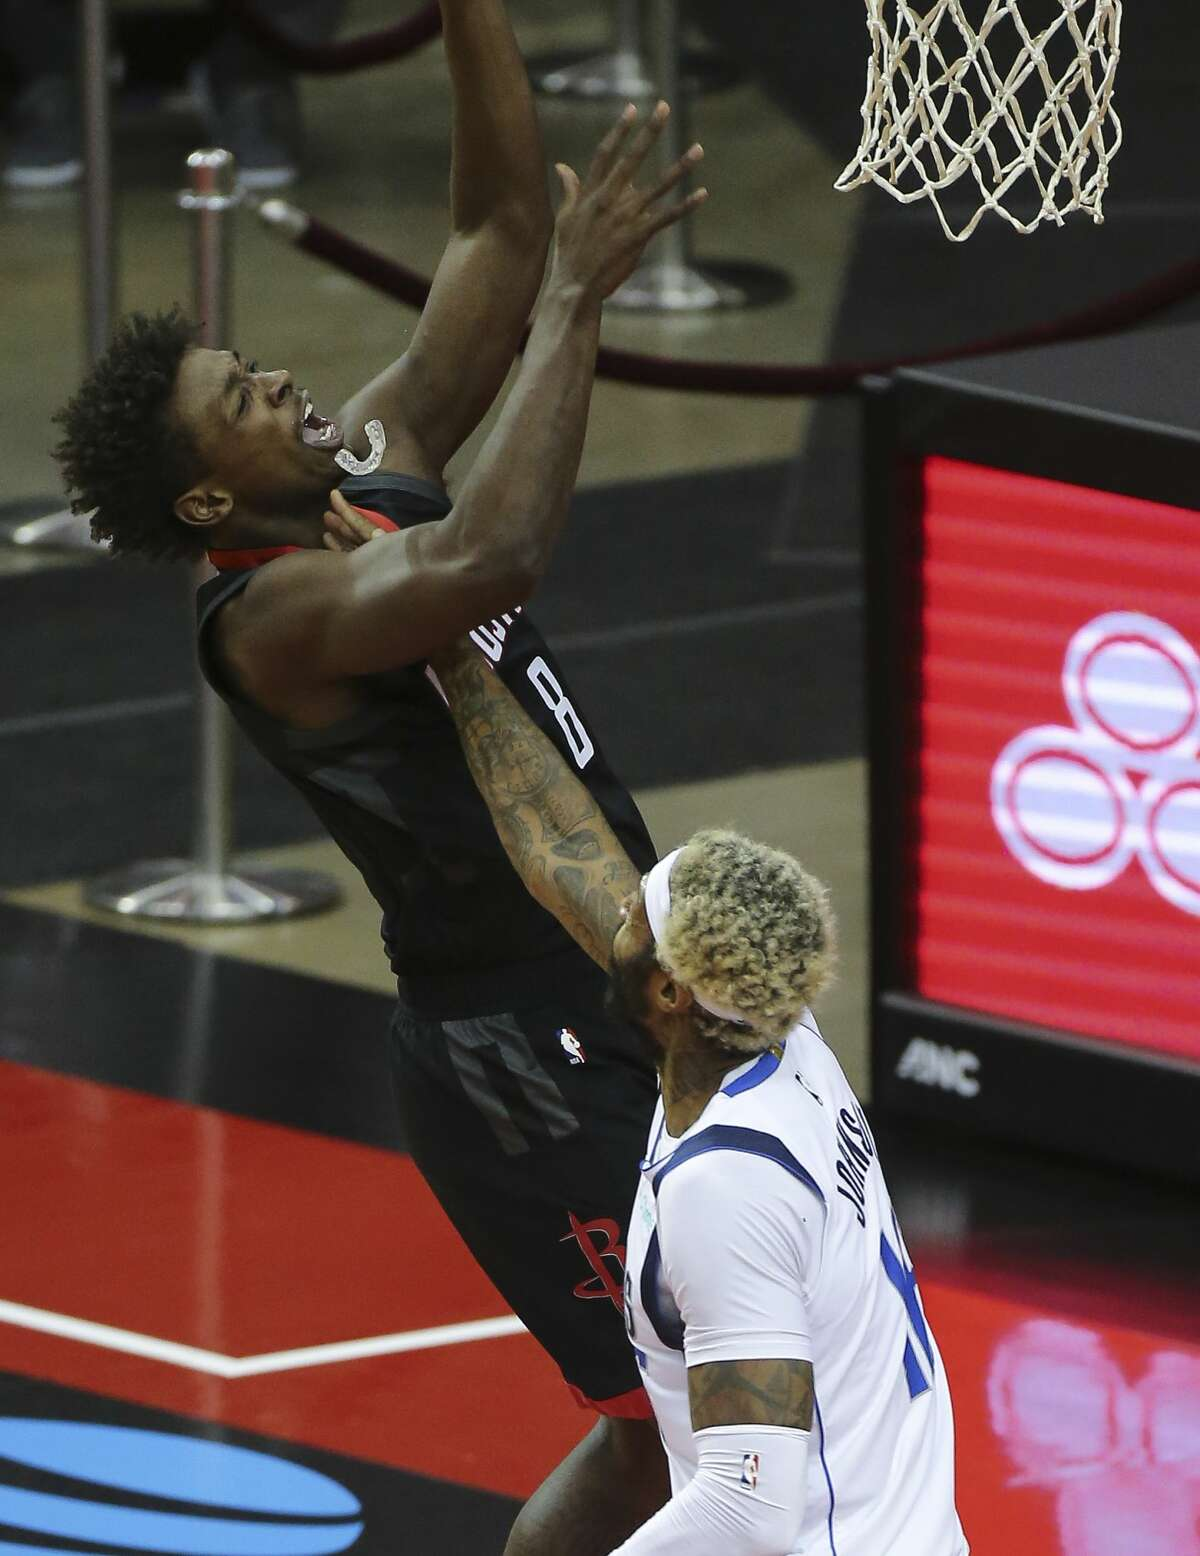 Houston Rockets forward Jae'Sean Tate's (8) mouth guard comes off when he is fouled by Dallas Mavericks forward James Johnson (16) during the third quarter of a NBA game Monday, Jan. 4, 2021, at Toyota Center in Houston.